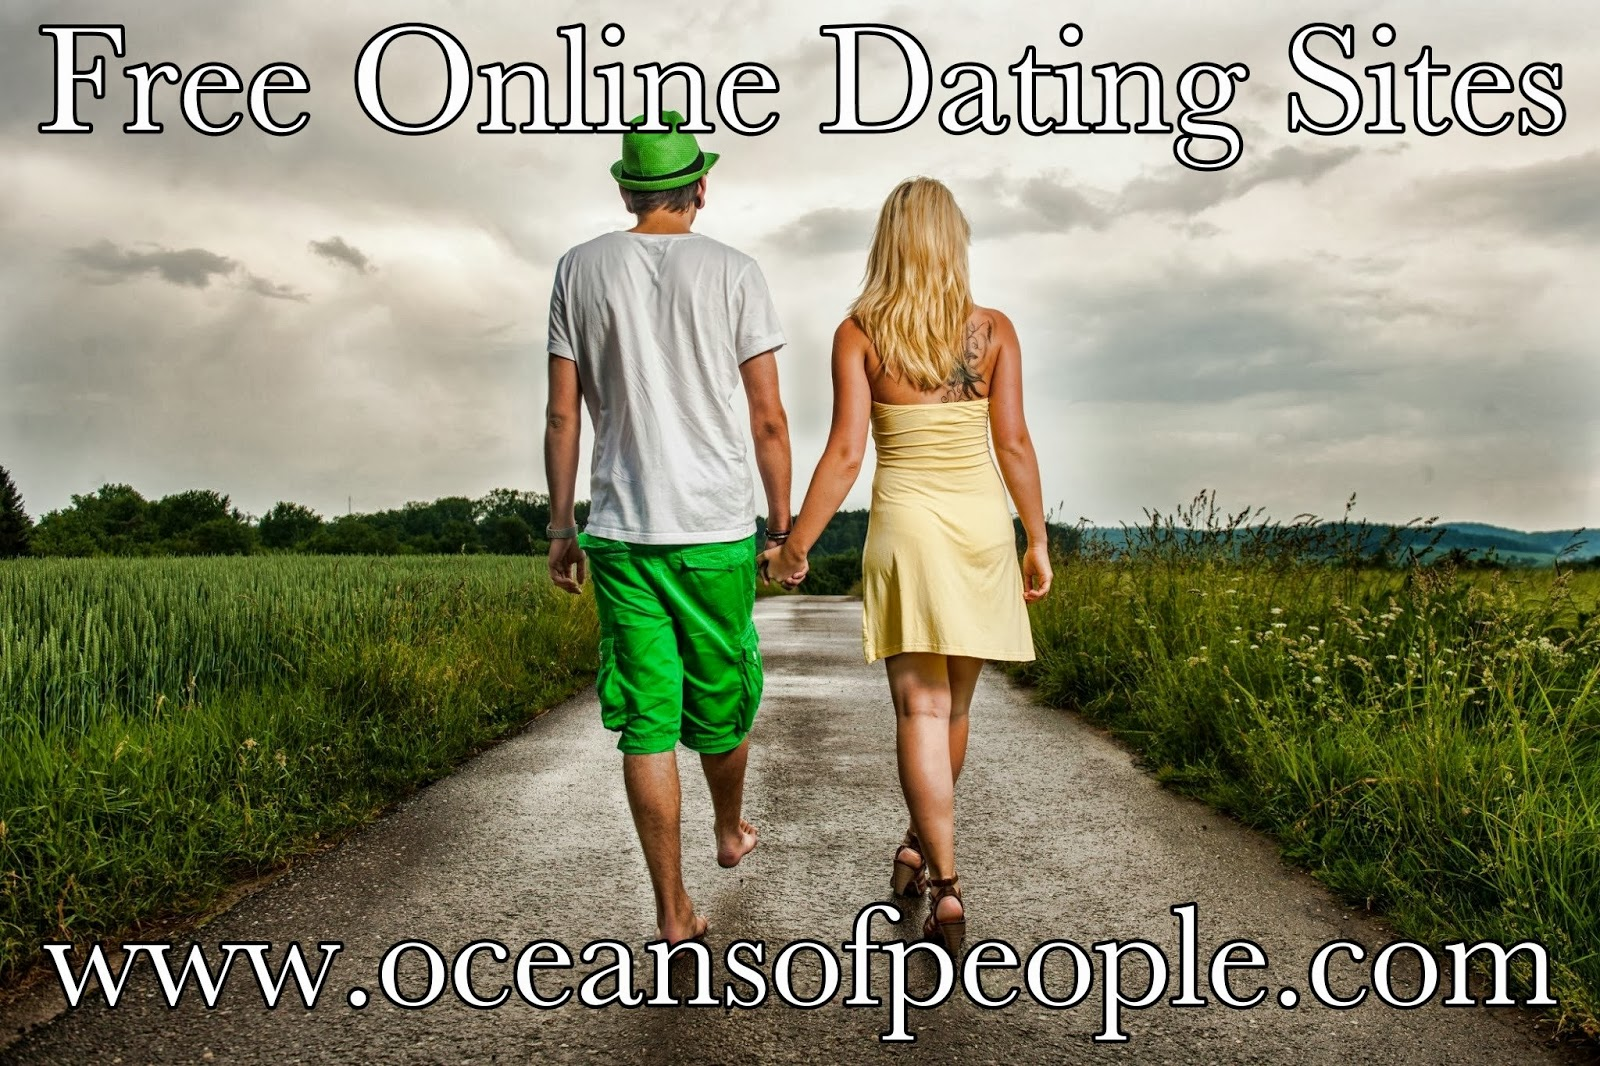 Belgium Dating Website 100 free of fees - Belgian singles